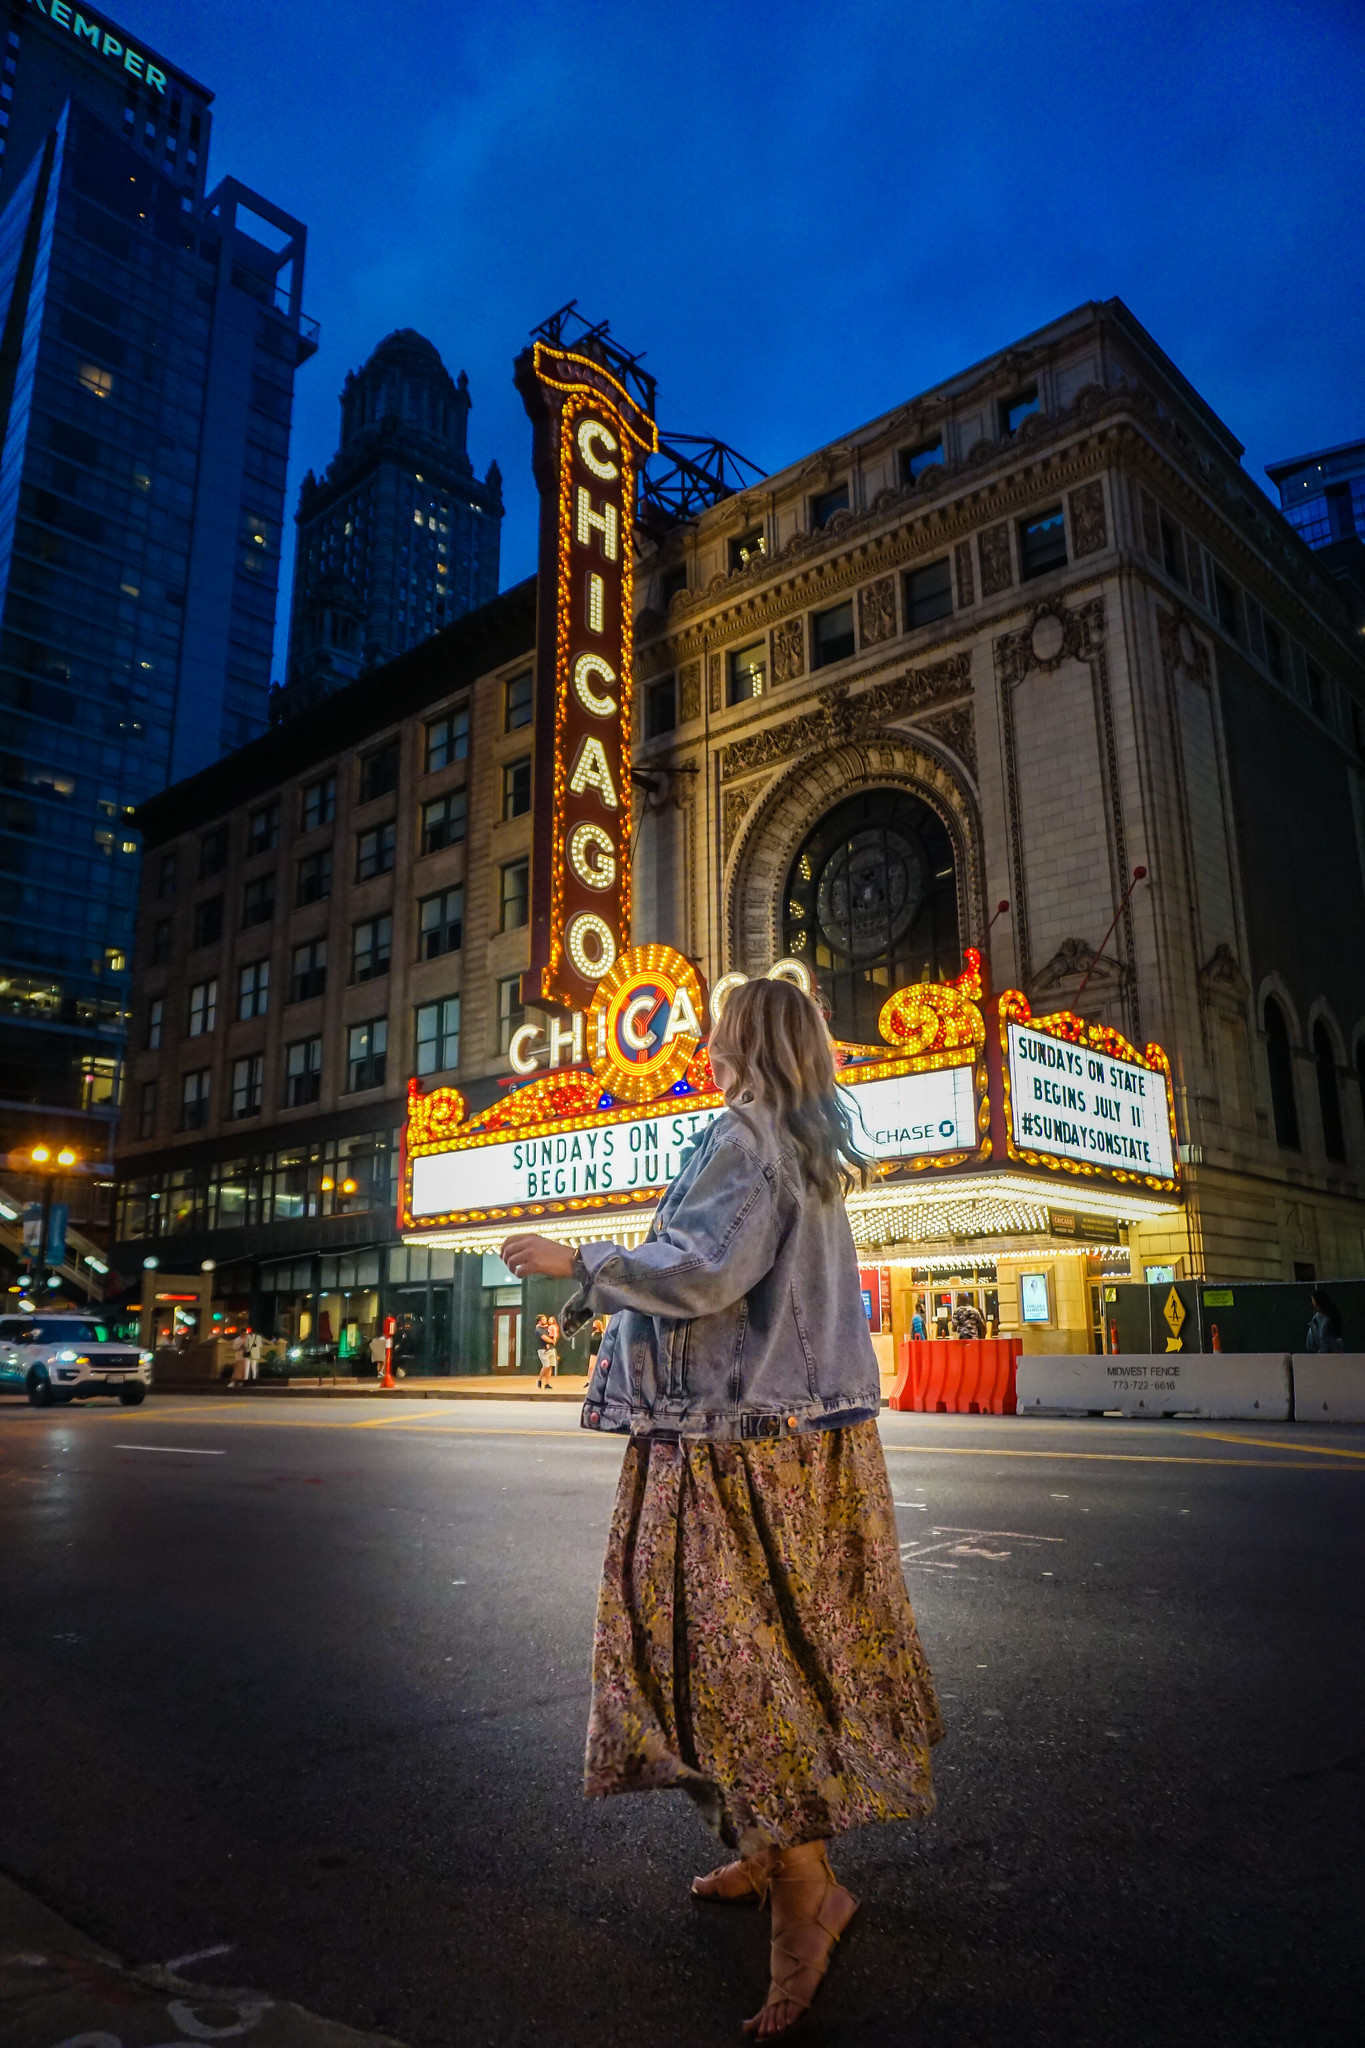 Chicago Theater at Night | First Time In Chicago: The Perfect 3 Day Itinerary | Chicago Travel Guide | 72 Hours in Chicago | 3 Days in Chicago Itinerary | What to do in Chicago | Where to Stay in Chicago | Ultimate Chicago Bucket List | Top Things to Do in Chicago | First Timer's Guide to Chicago